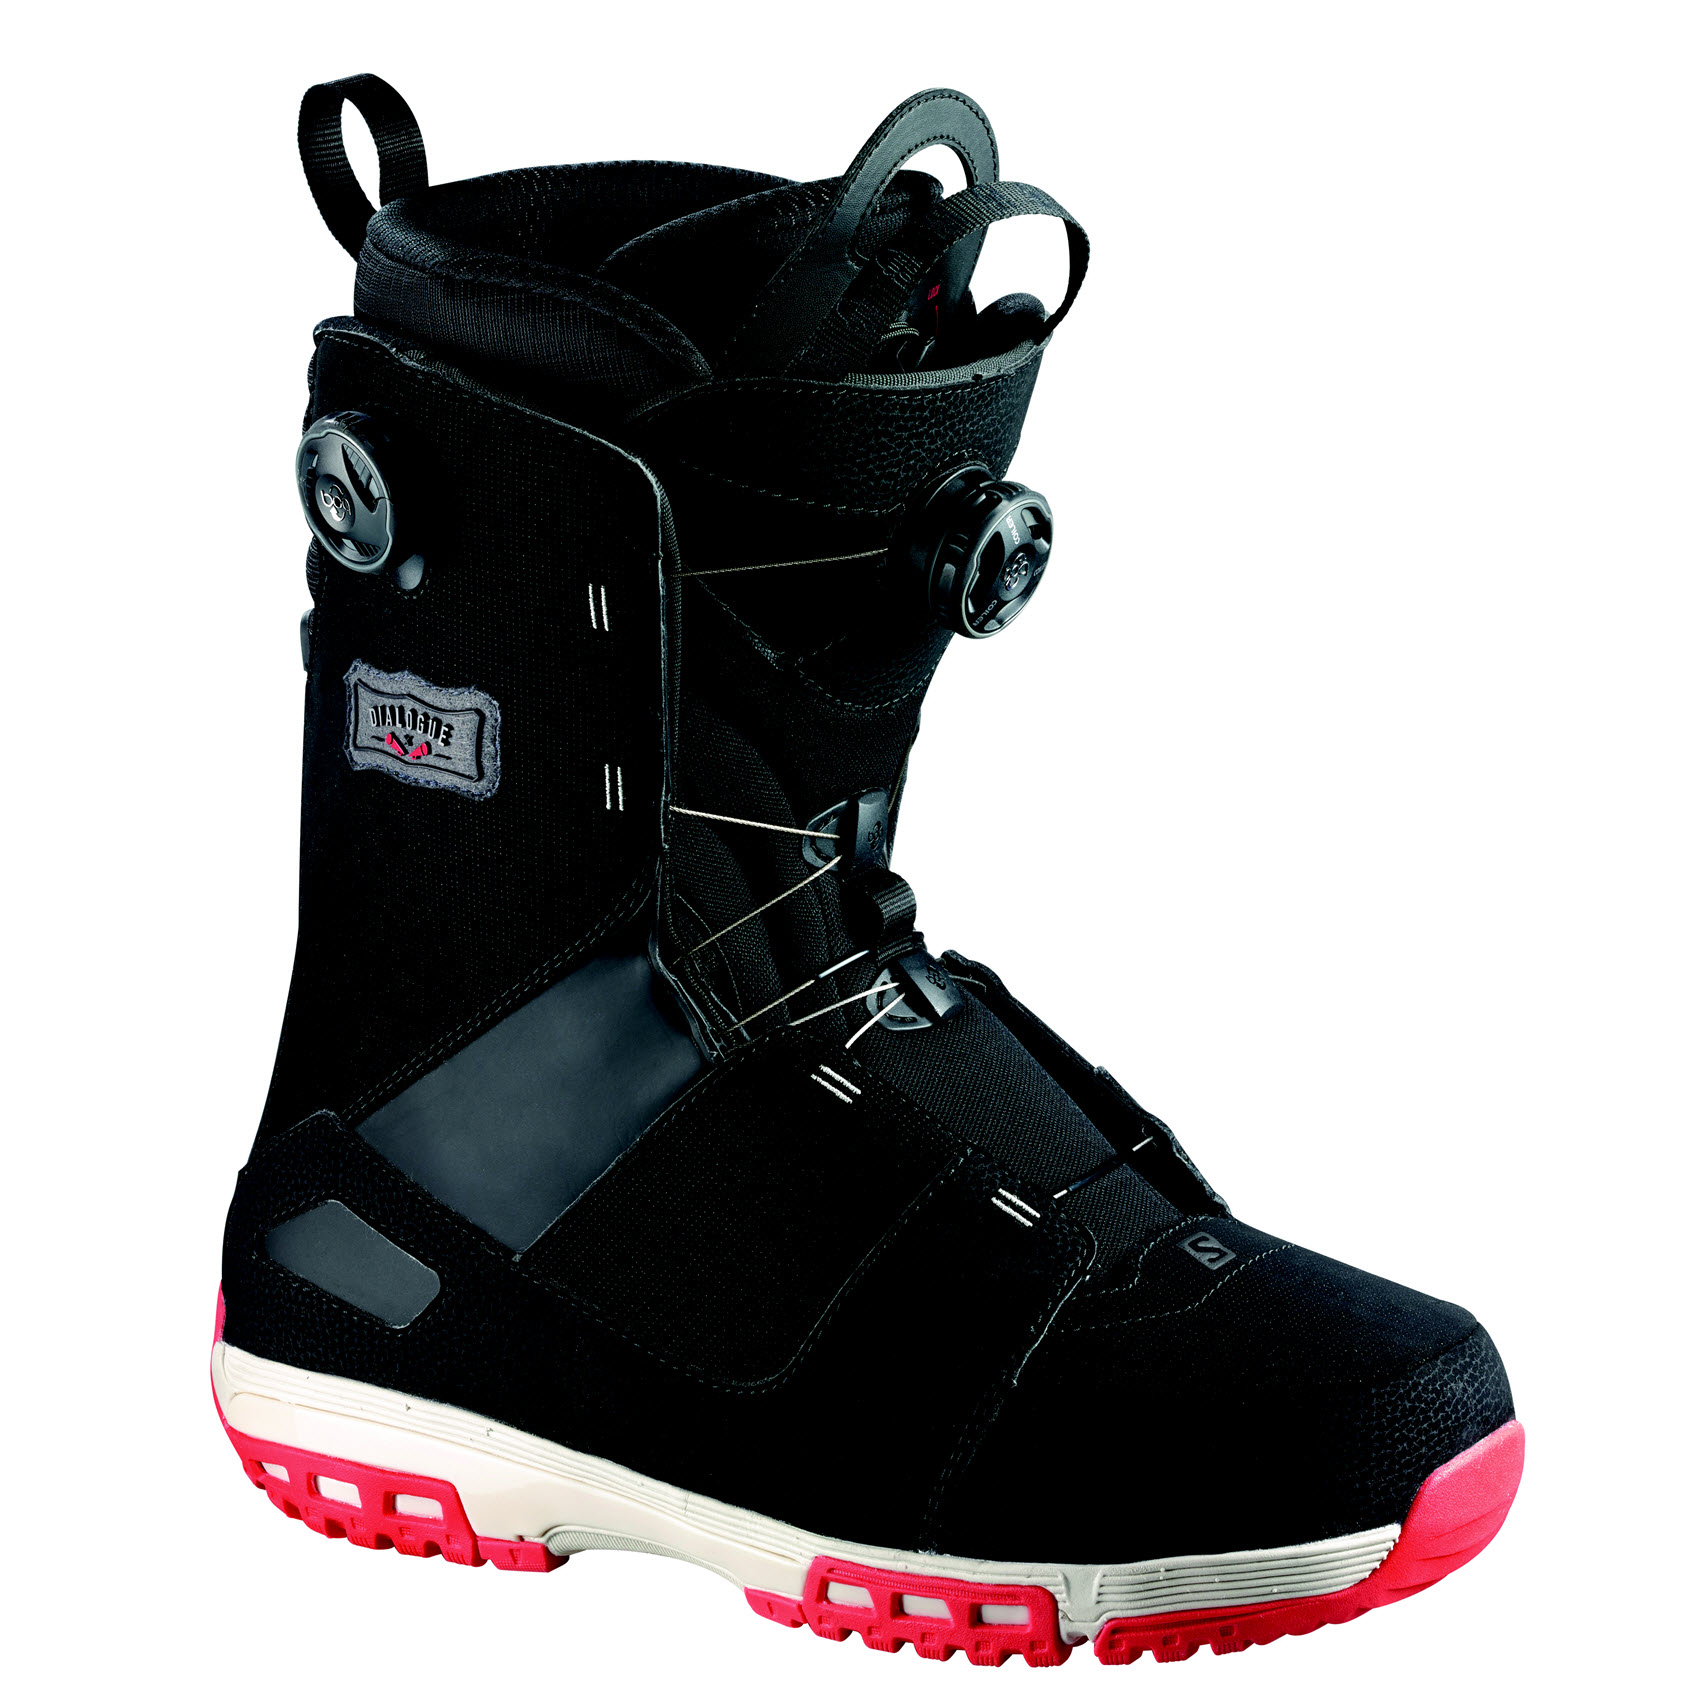 Salomon Dialogue Focus BOA Mens Snowboard Boots Black Grey Red 2015